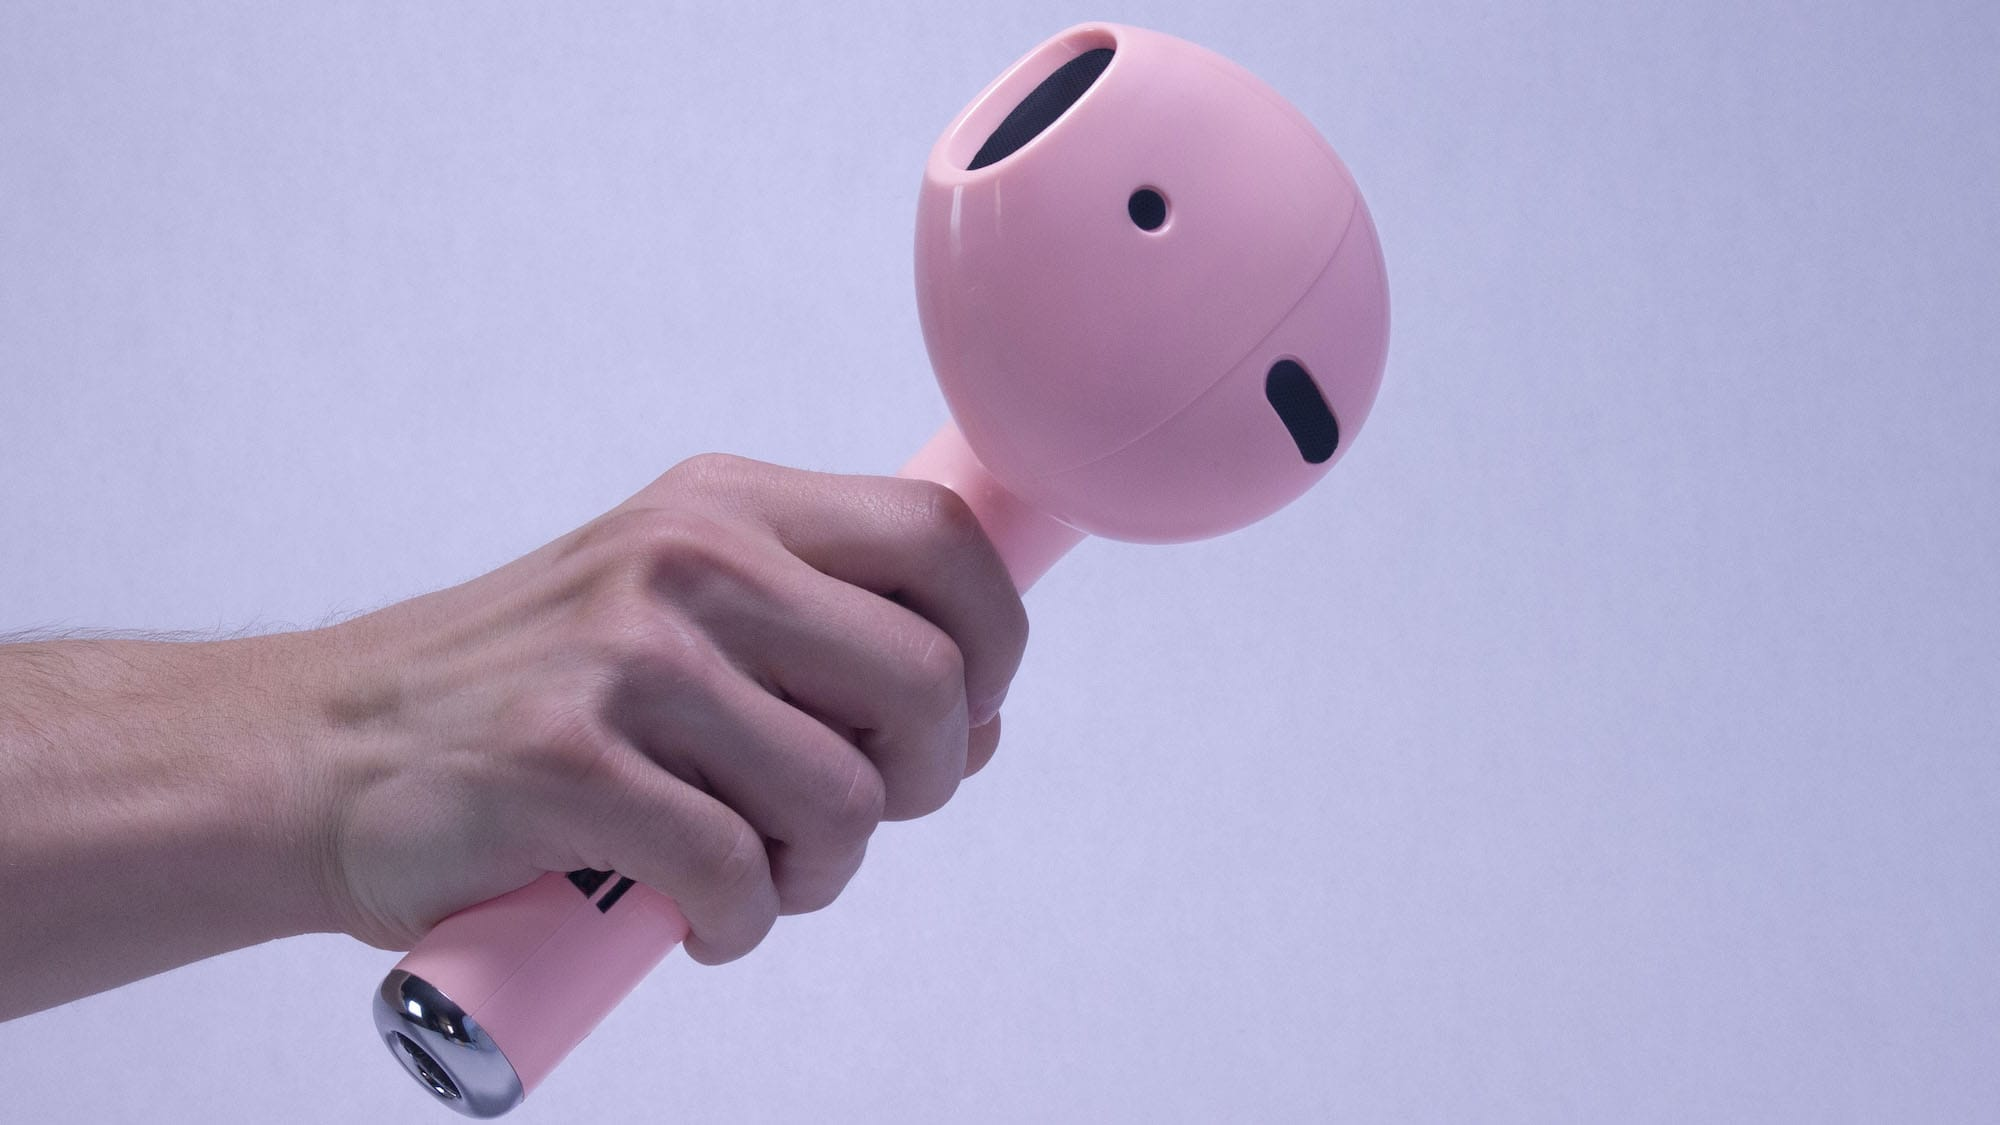 XL Speaker giant earbud provides high-quality audio and enhances any space